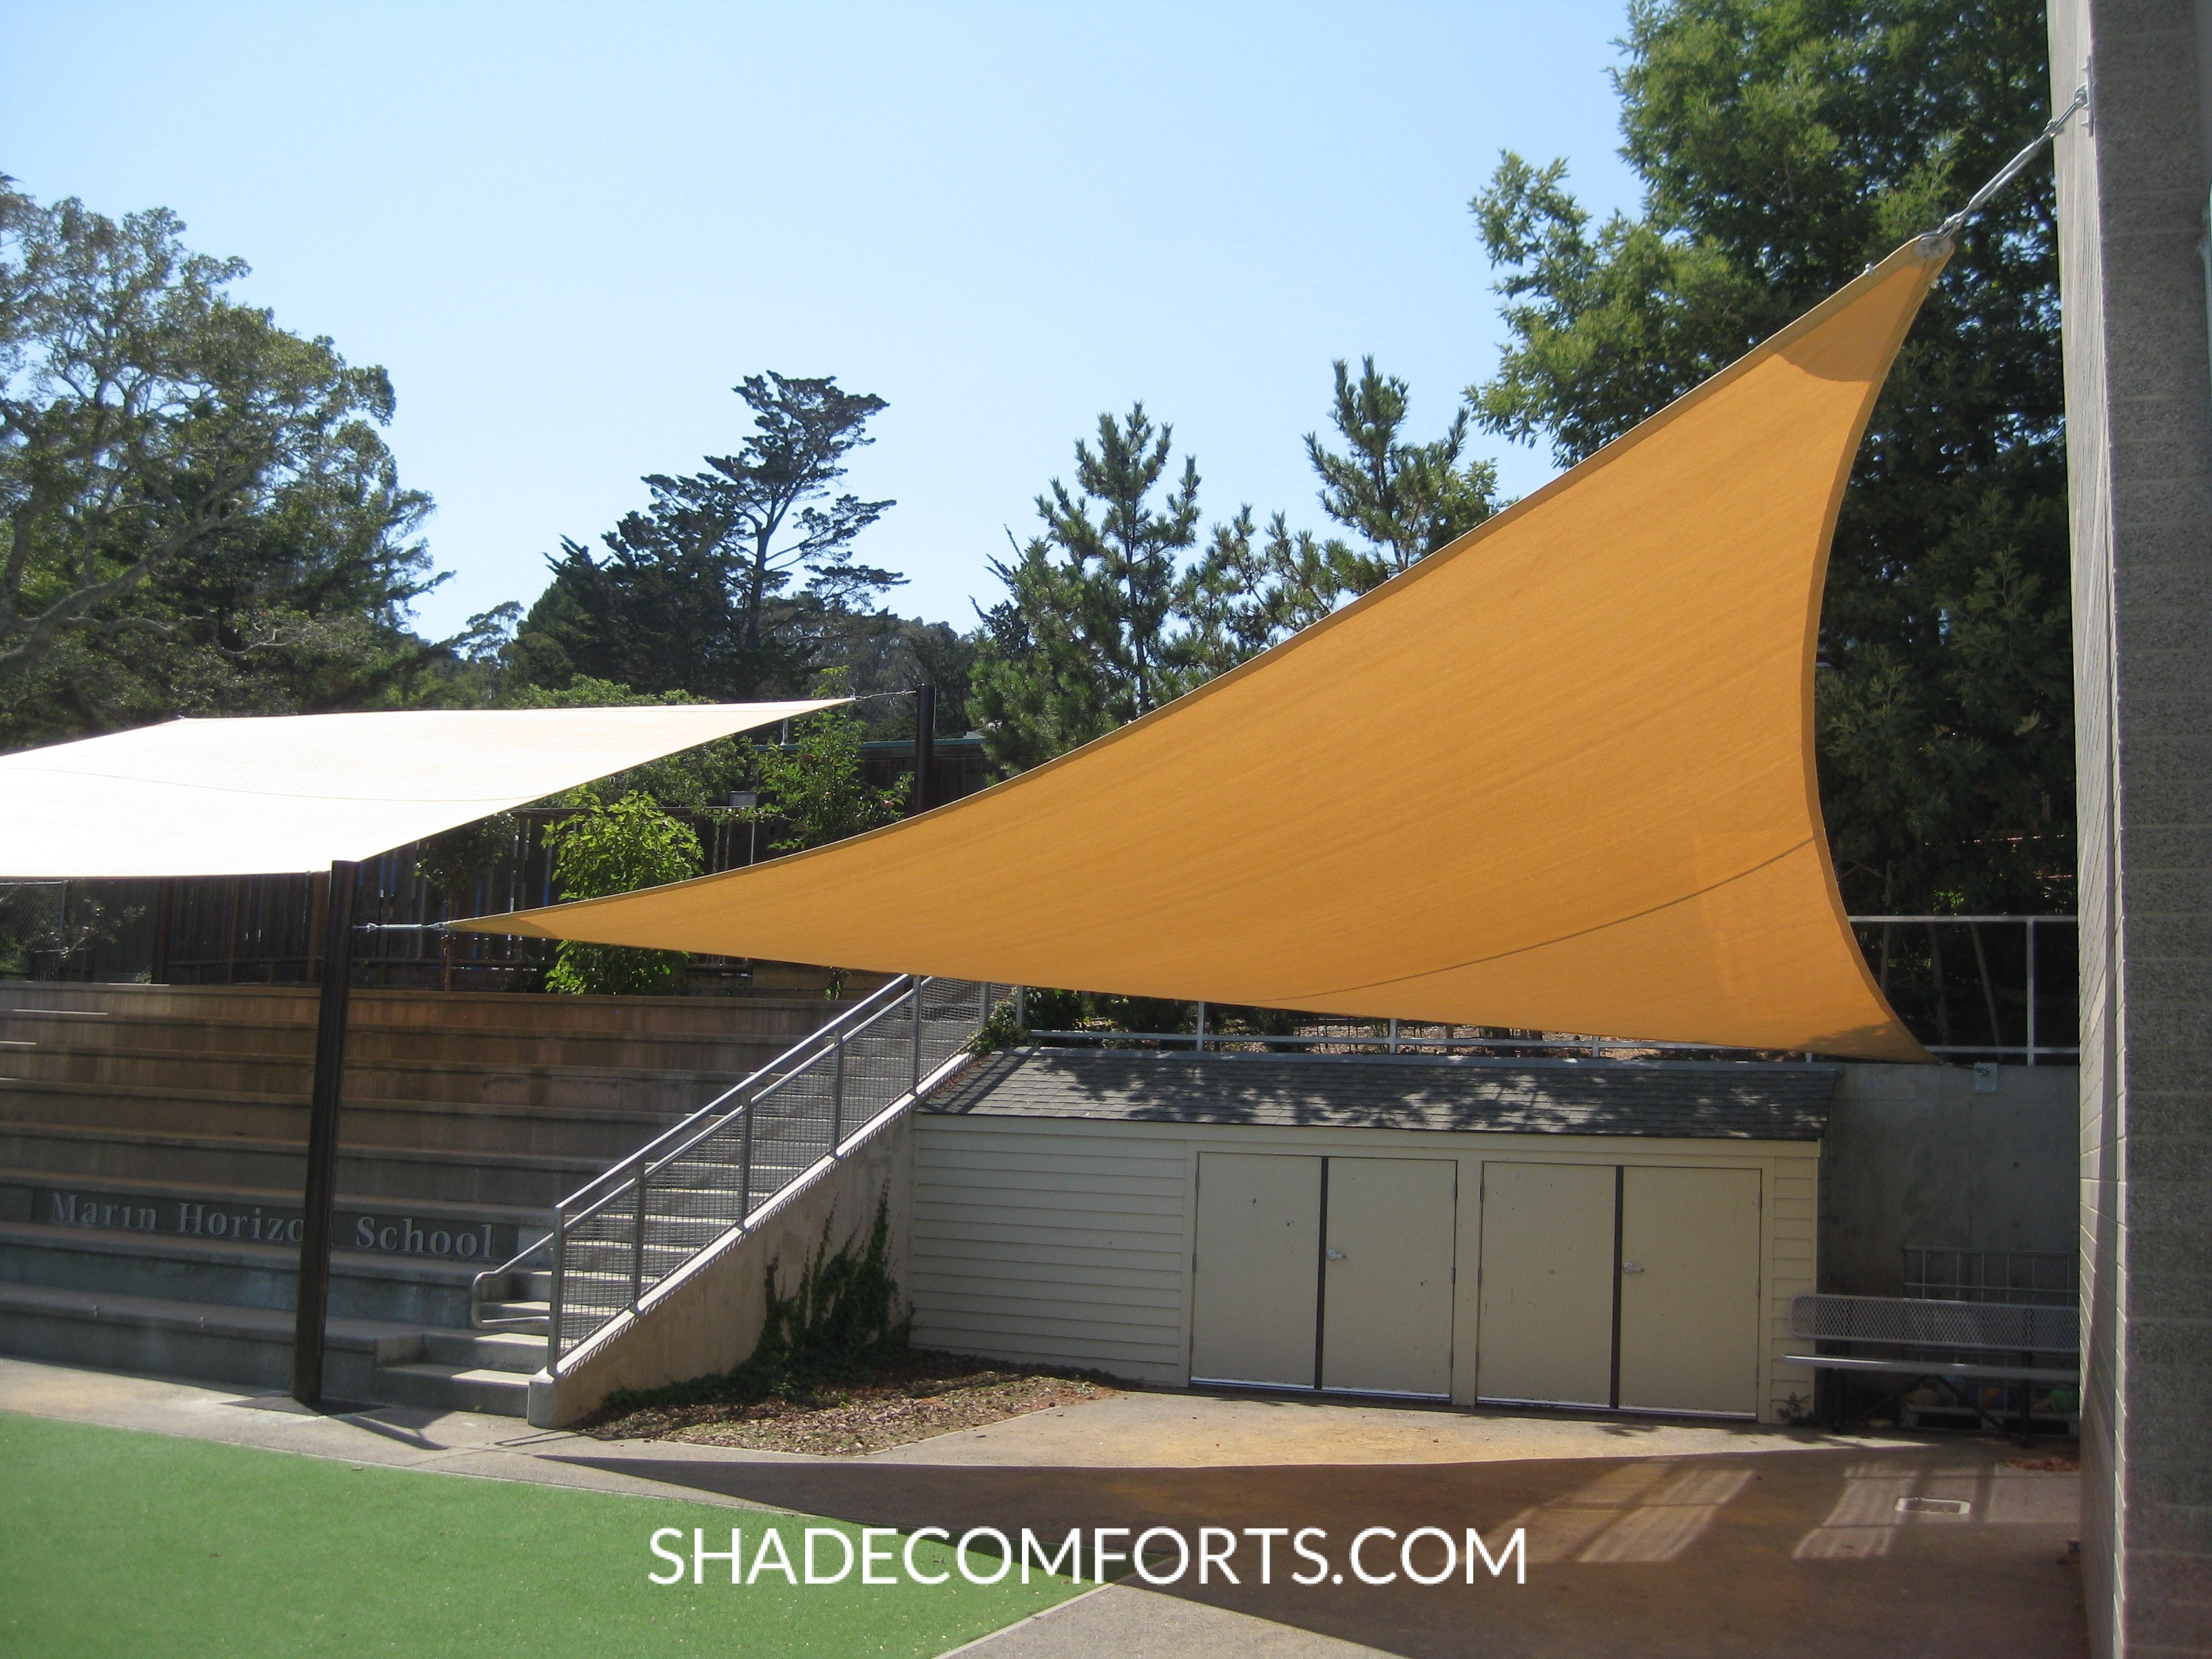 Tensile Structure Bleacher Shade Awning Patio California